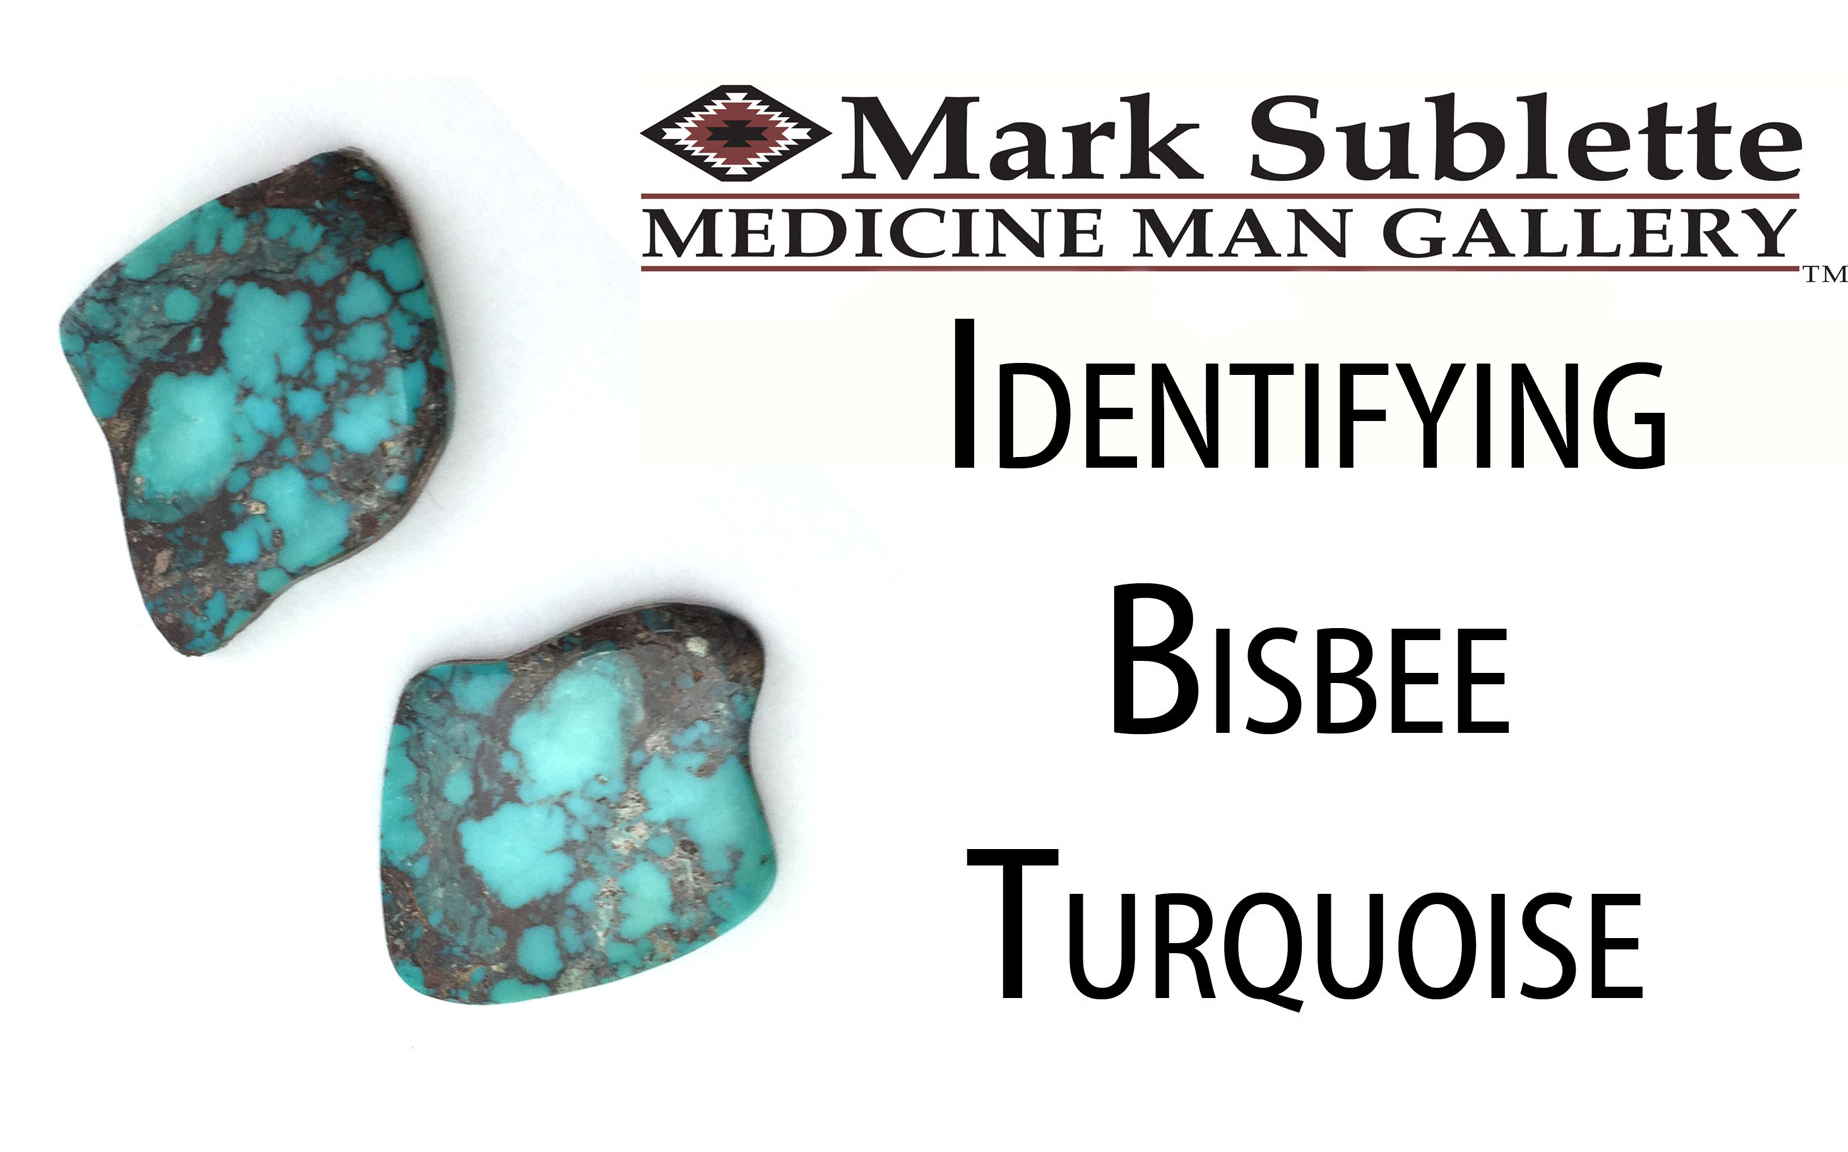 Native American Indian Jewerly: How to identify and date Bisbee Turquoise in Native American Jewelry